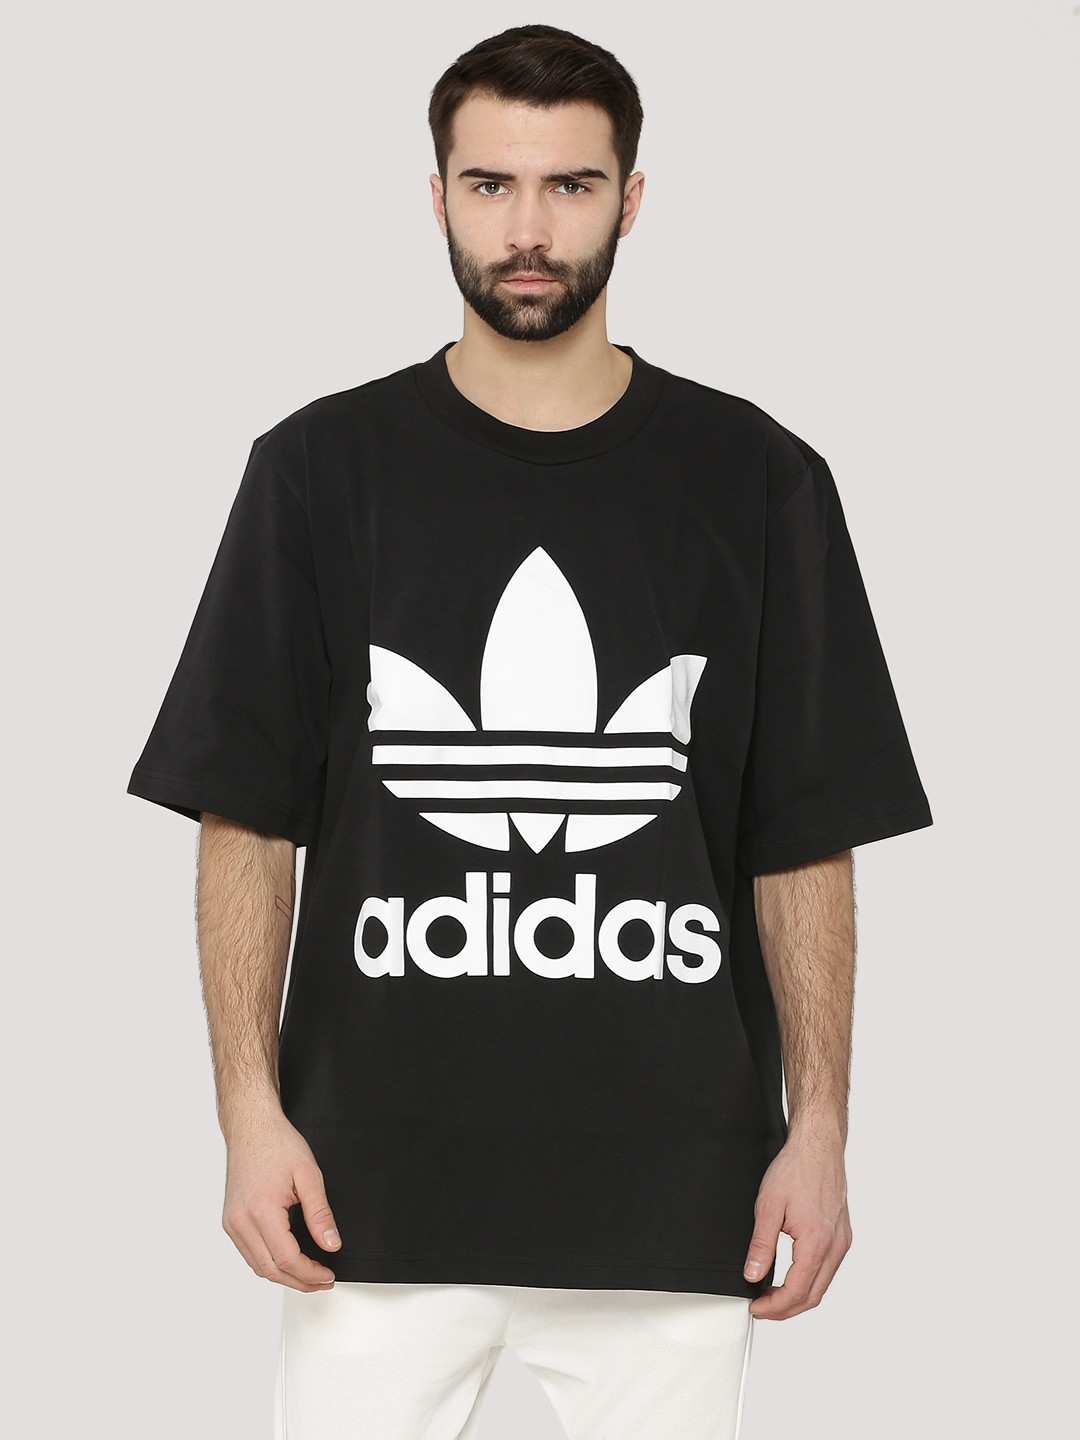 Black t shirt buy online - Adidas Originals Trefoil Boxy T Shirt